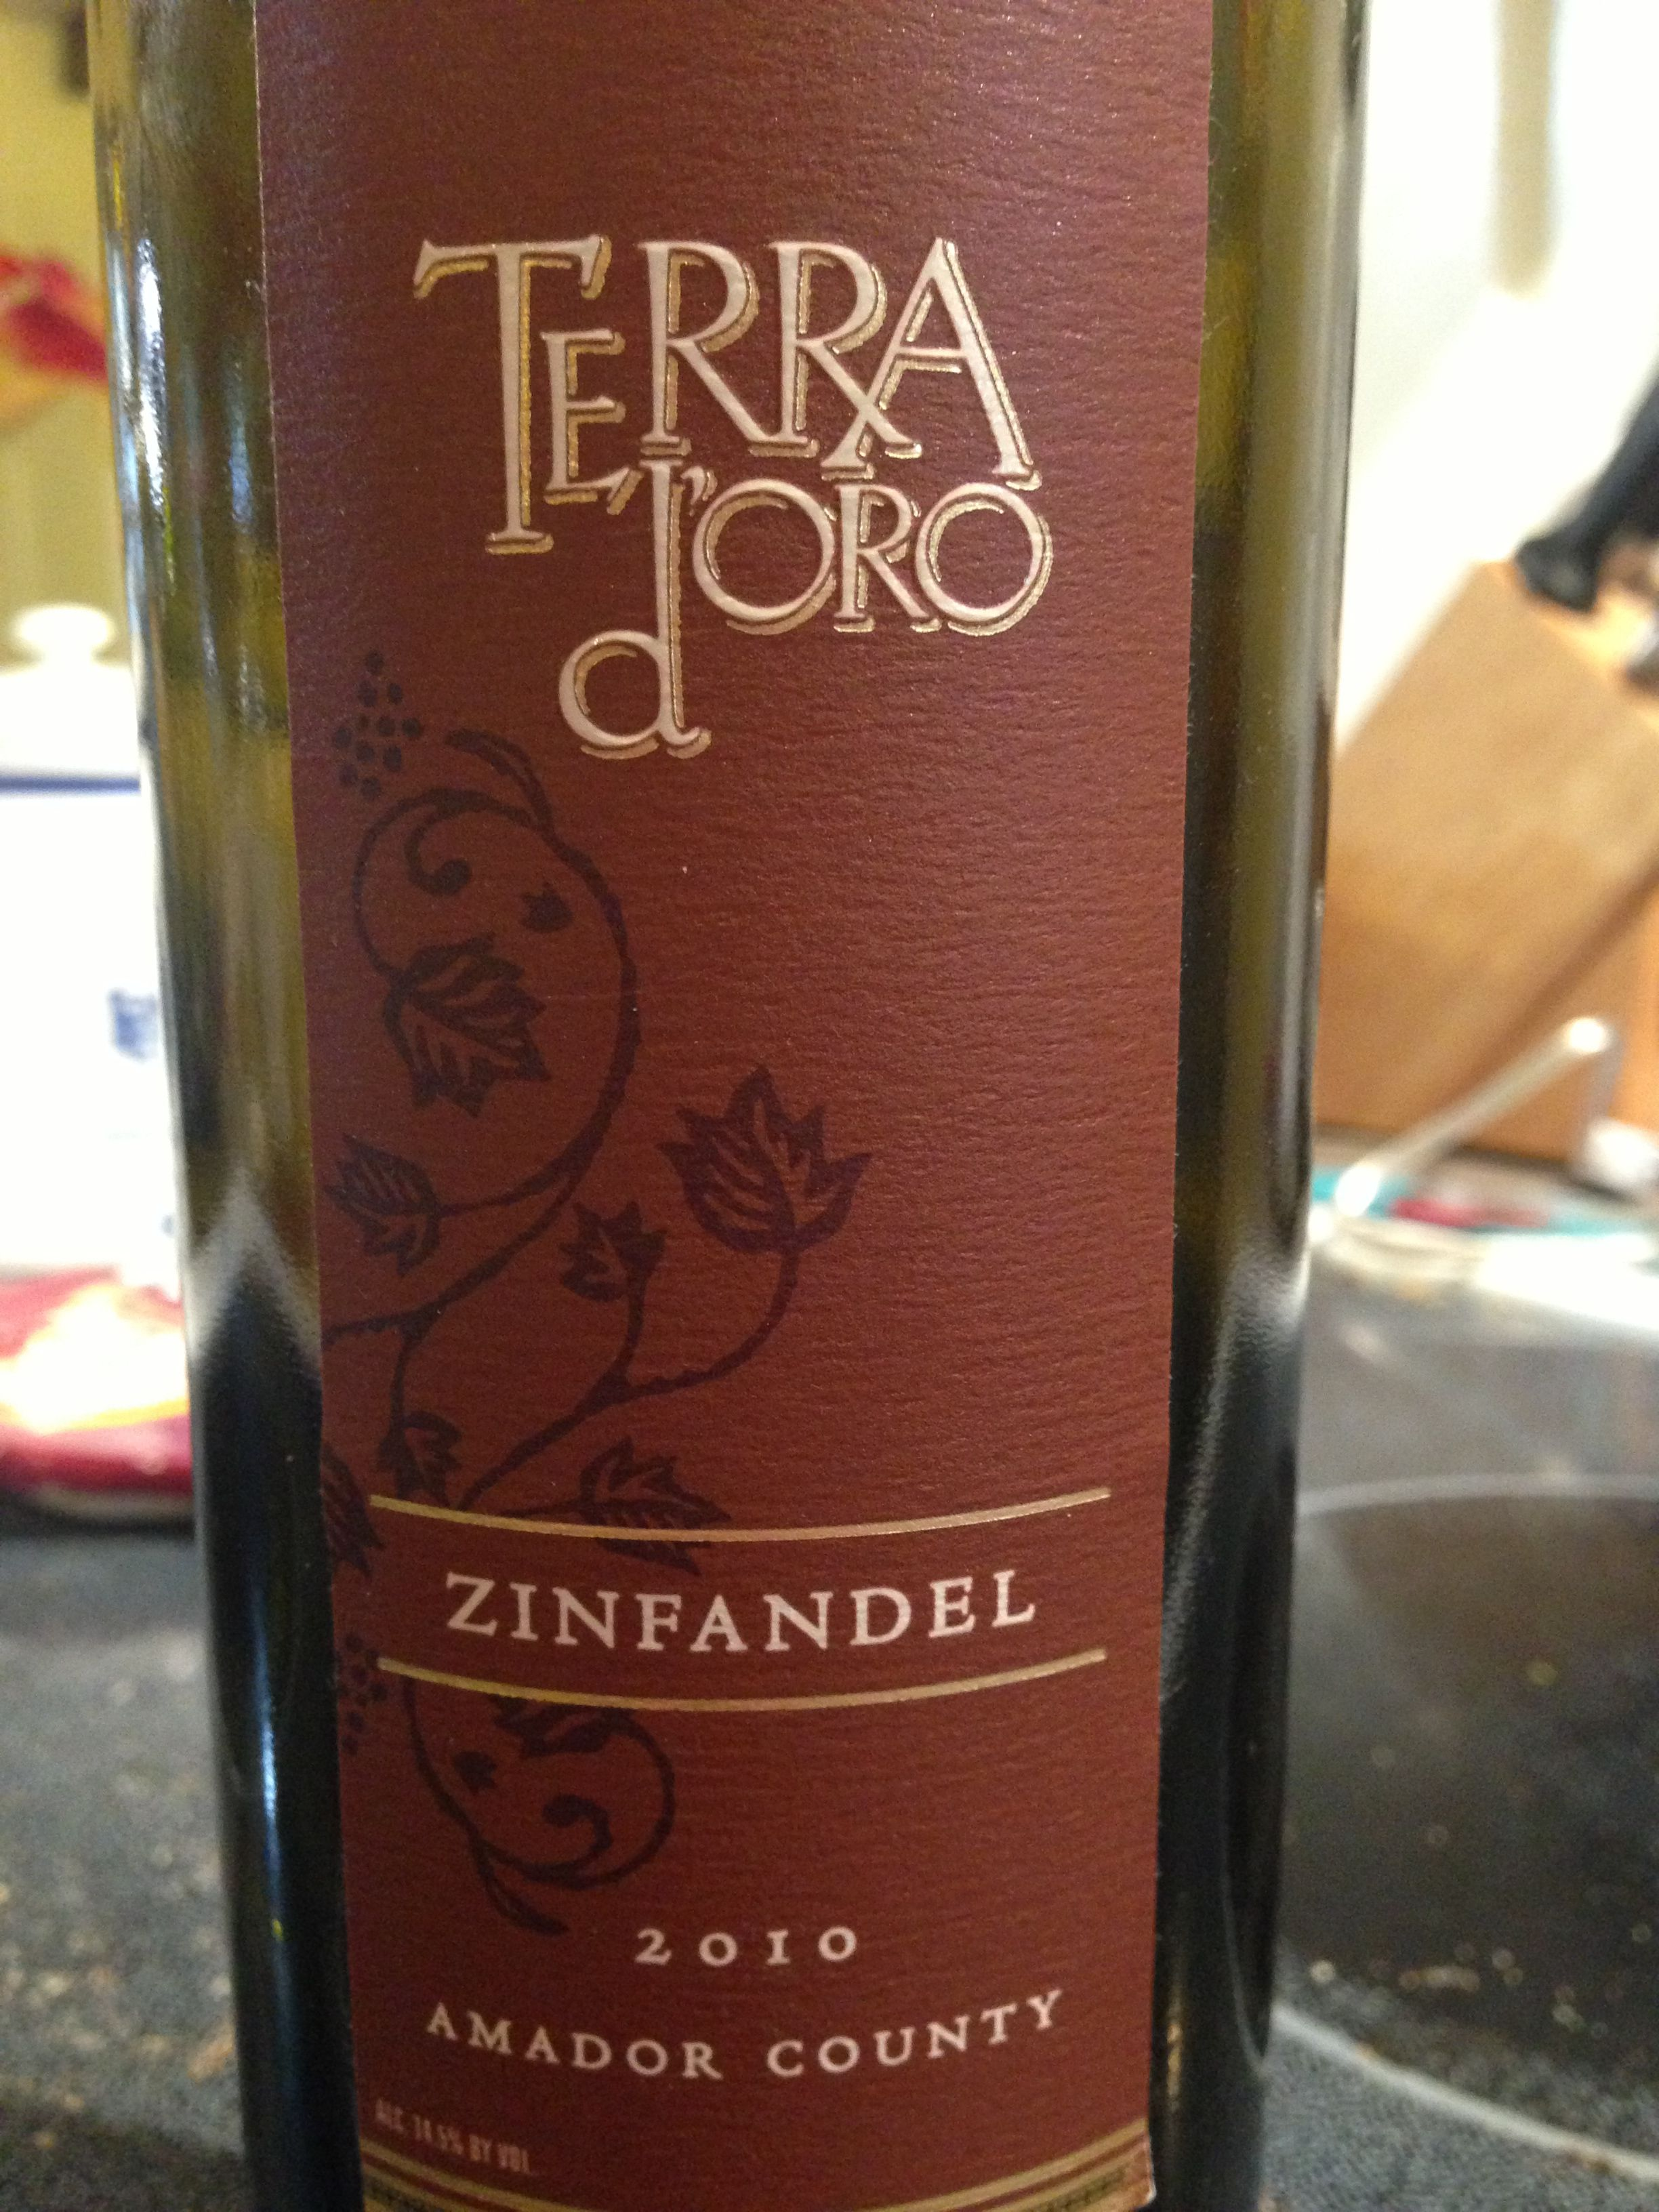 Terre D Oro Zin Fruity Spicy And Relaxing Zin Is Such A Perfect Summer Red Fruity Zinfandel Wines